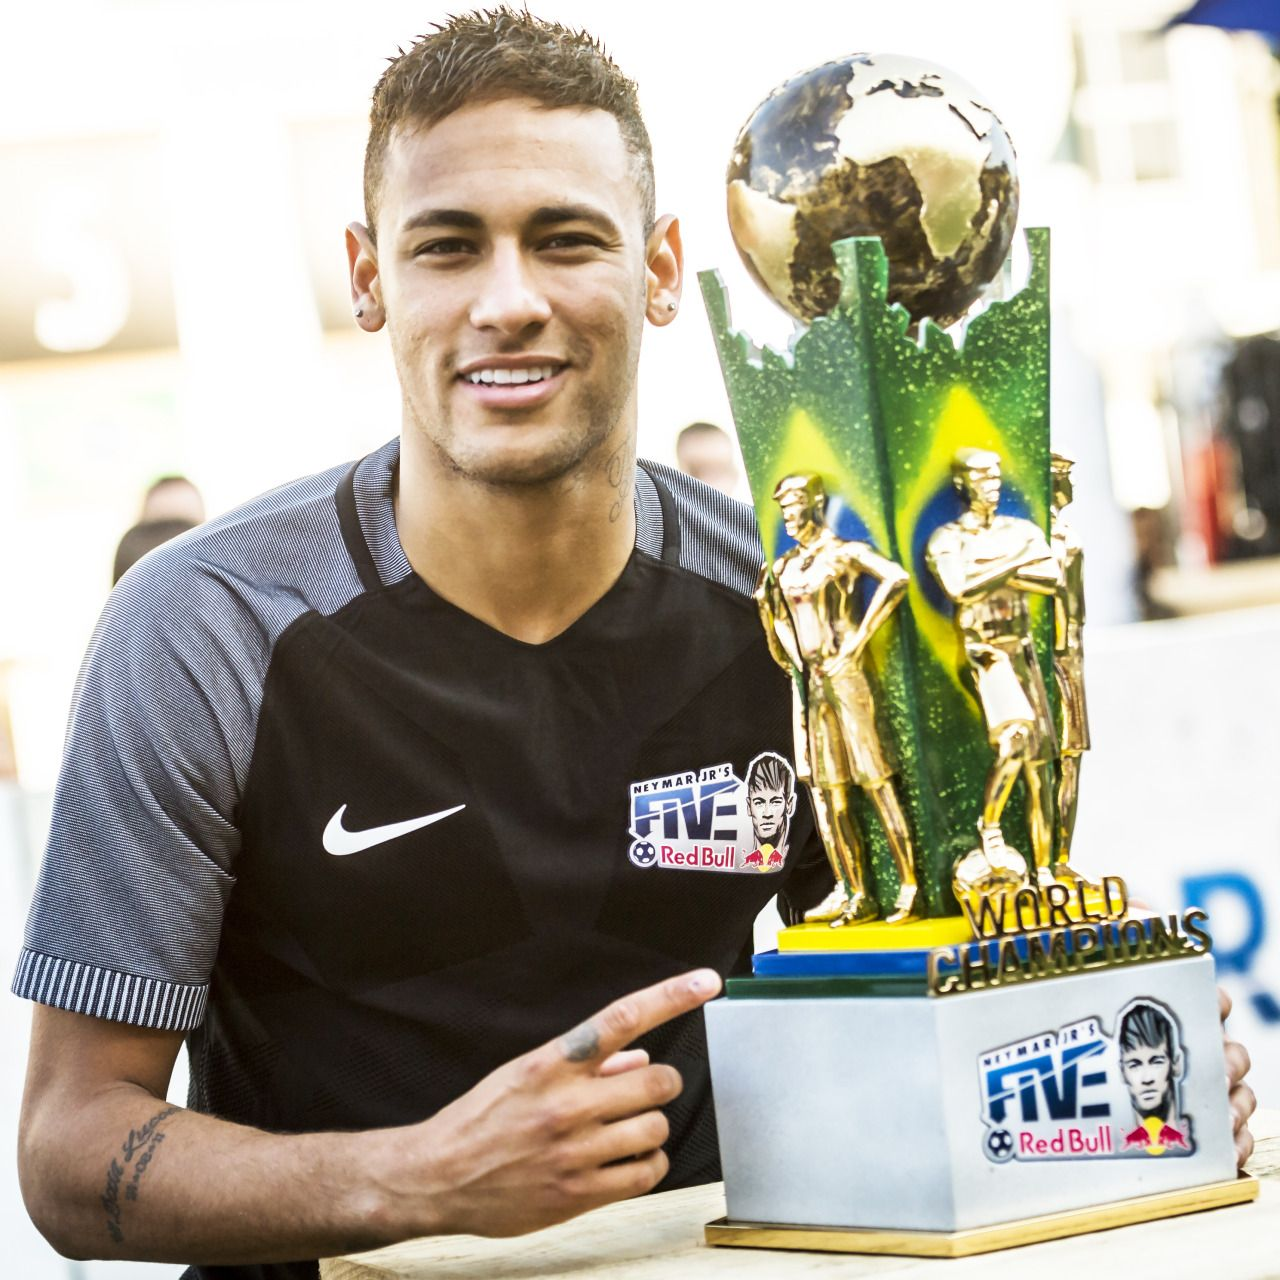 neymar dp profile pictures for whatsapp facebook